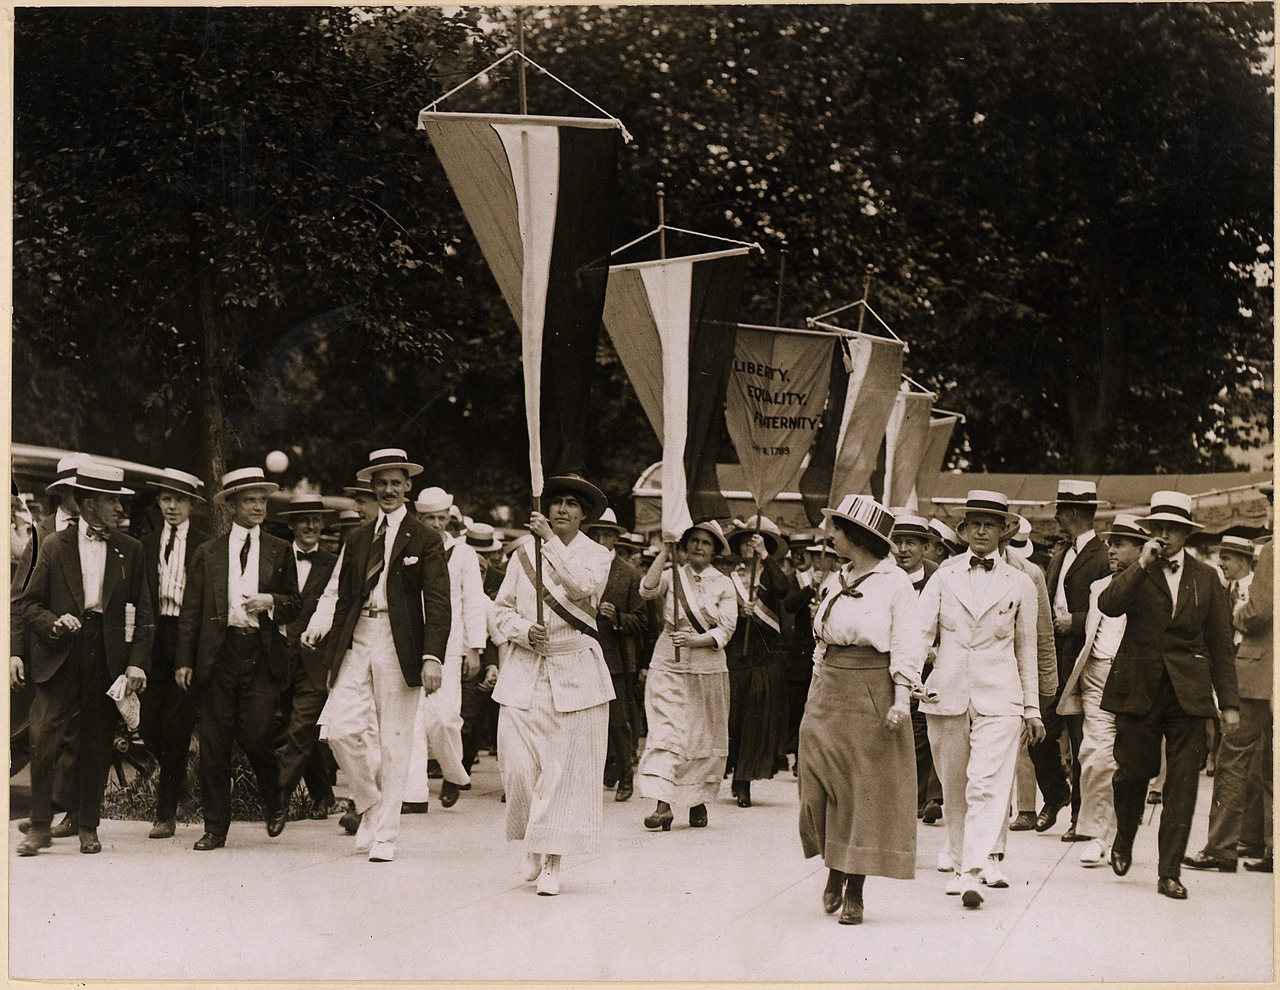 australia women s suffrage In 1891, a handful of determined women from the woman's christian temperance union and the victorian temperance alliance, together with other suffrage groups, went door-to-door with a petition to gain the right to vote for victorian women:.